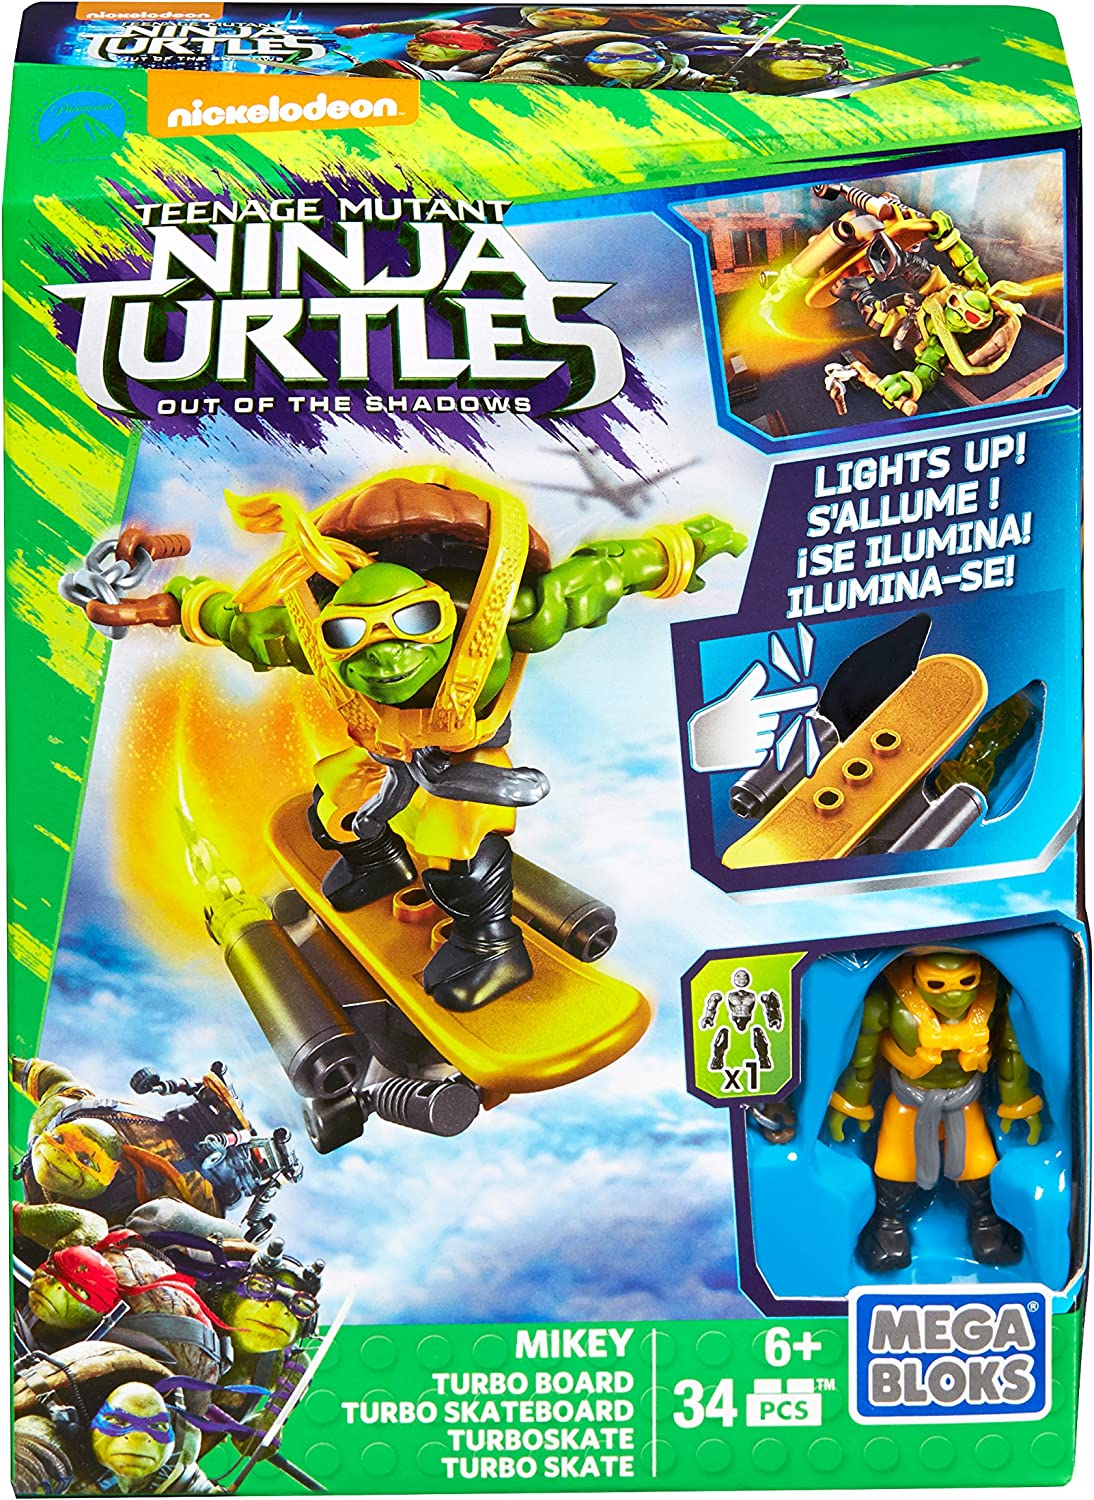 Mega Bloks Teenange Mutant Ninja Turtles: Out of The Shadows Mikey Turbo Board Playset